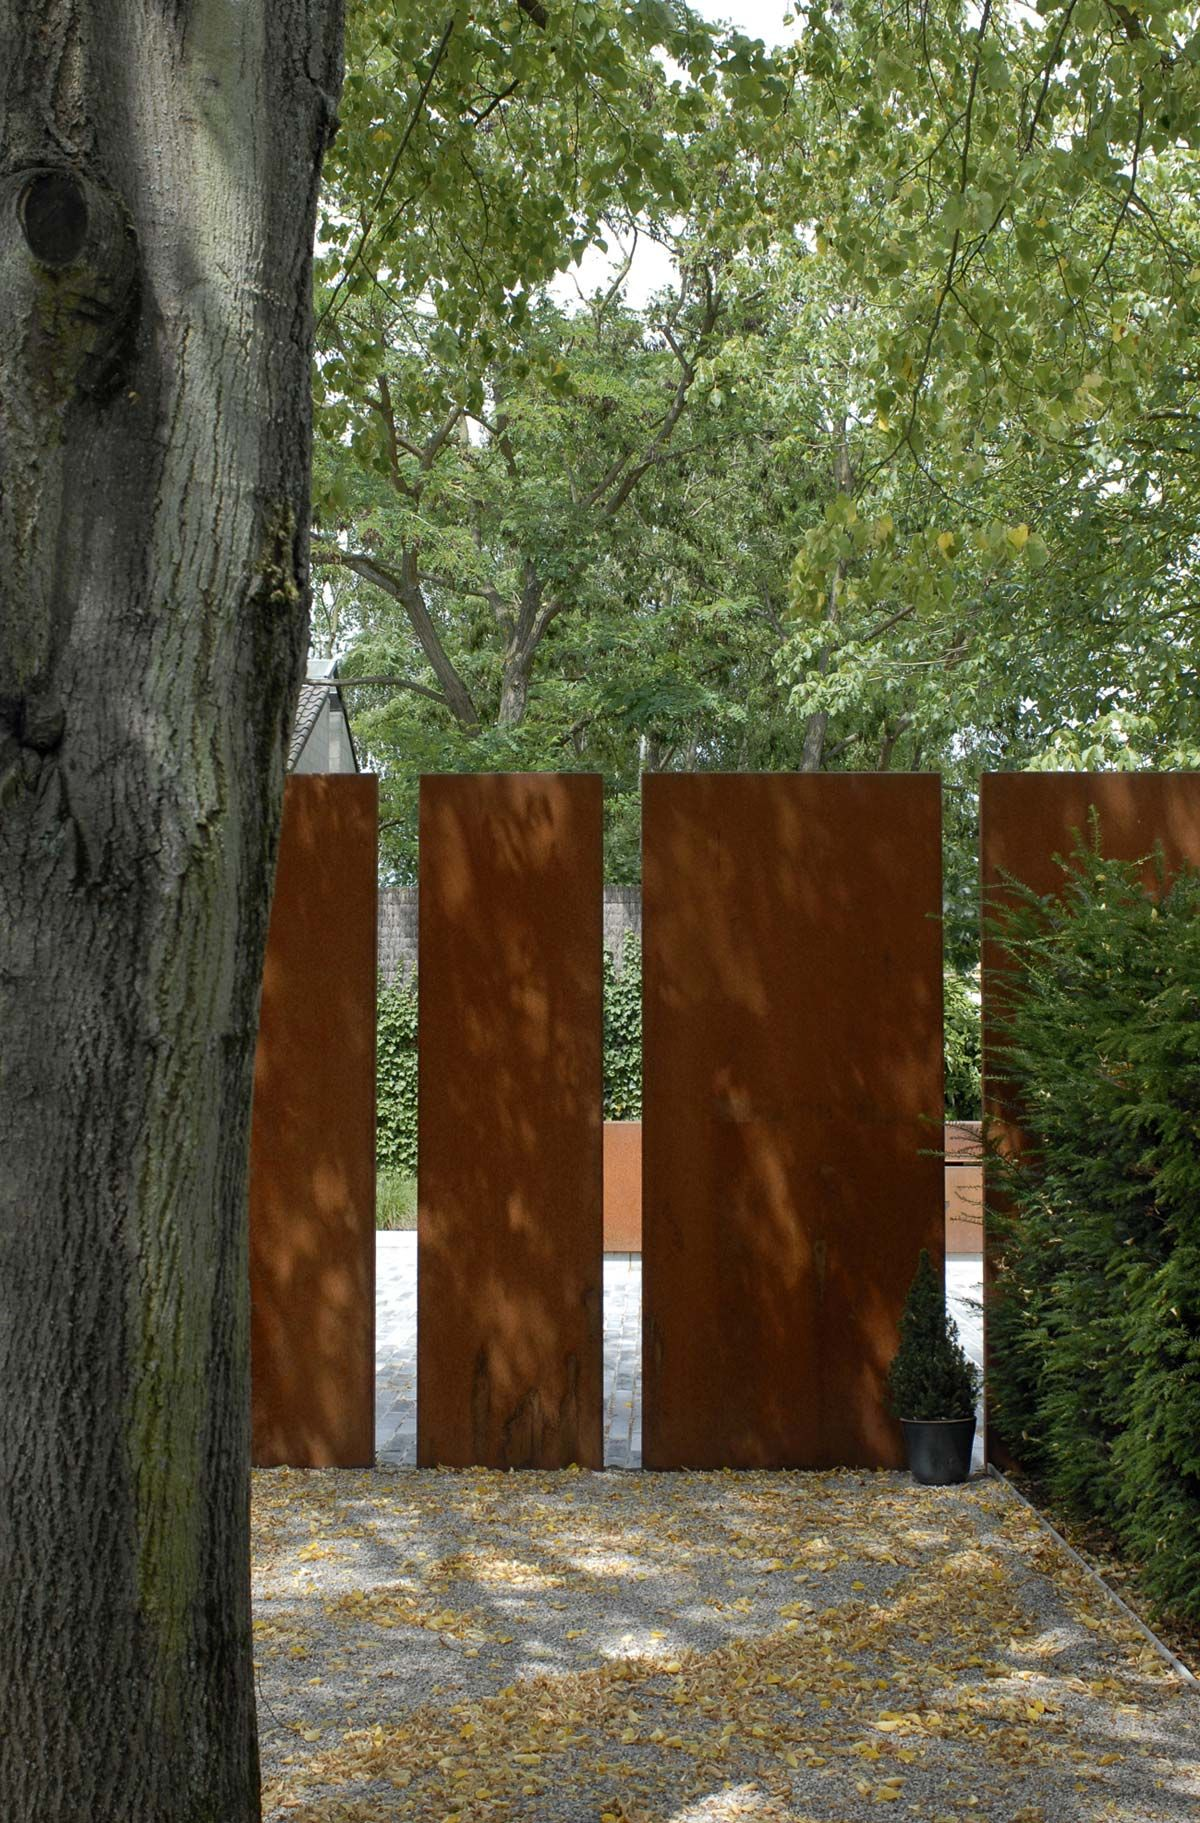 Do you HAVE? a cor-ten steel fence | Have | Pinterest | Van damme ...